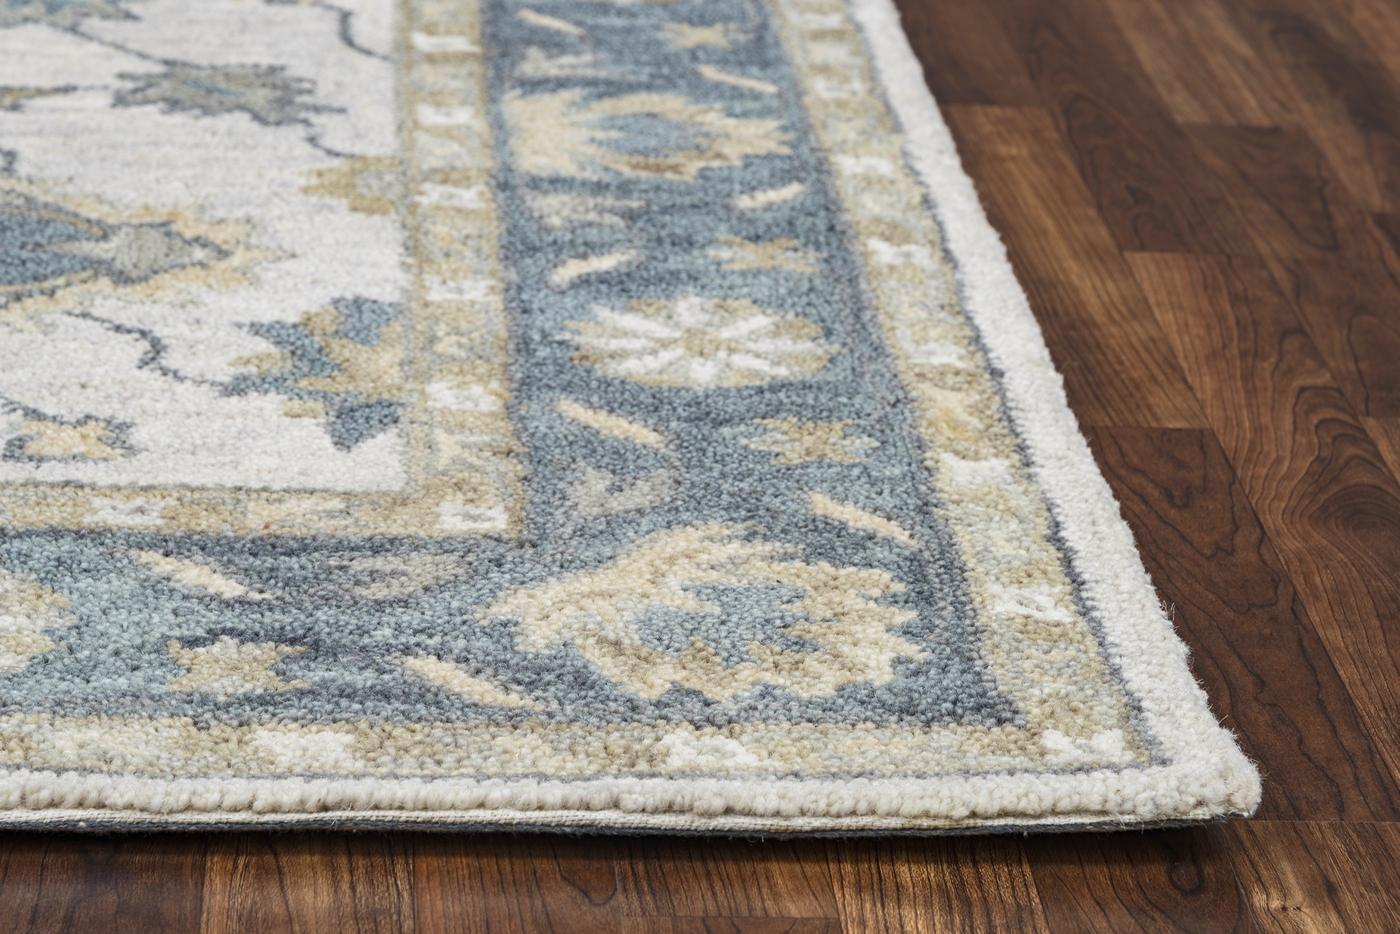 10 X 14 Area Rugs Leone Traditional Motifs Vines Wool Area Rug In Natural